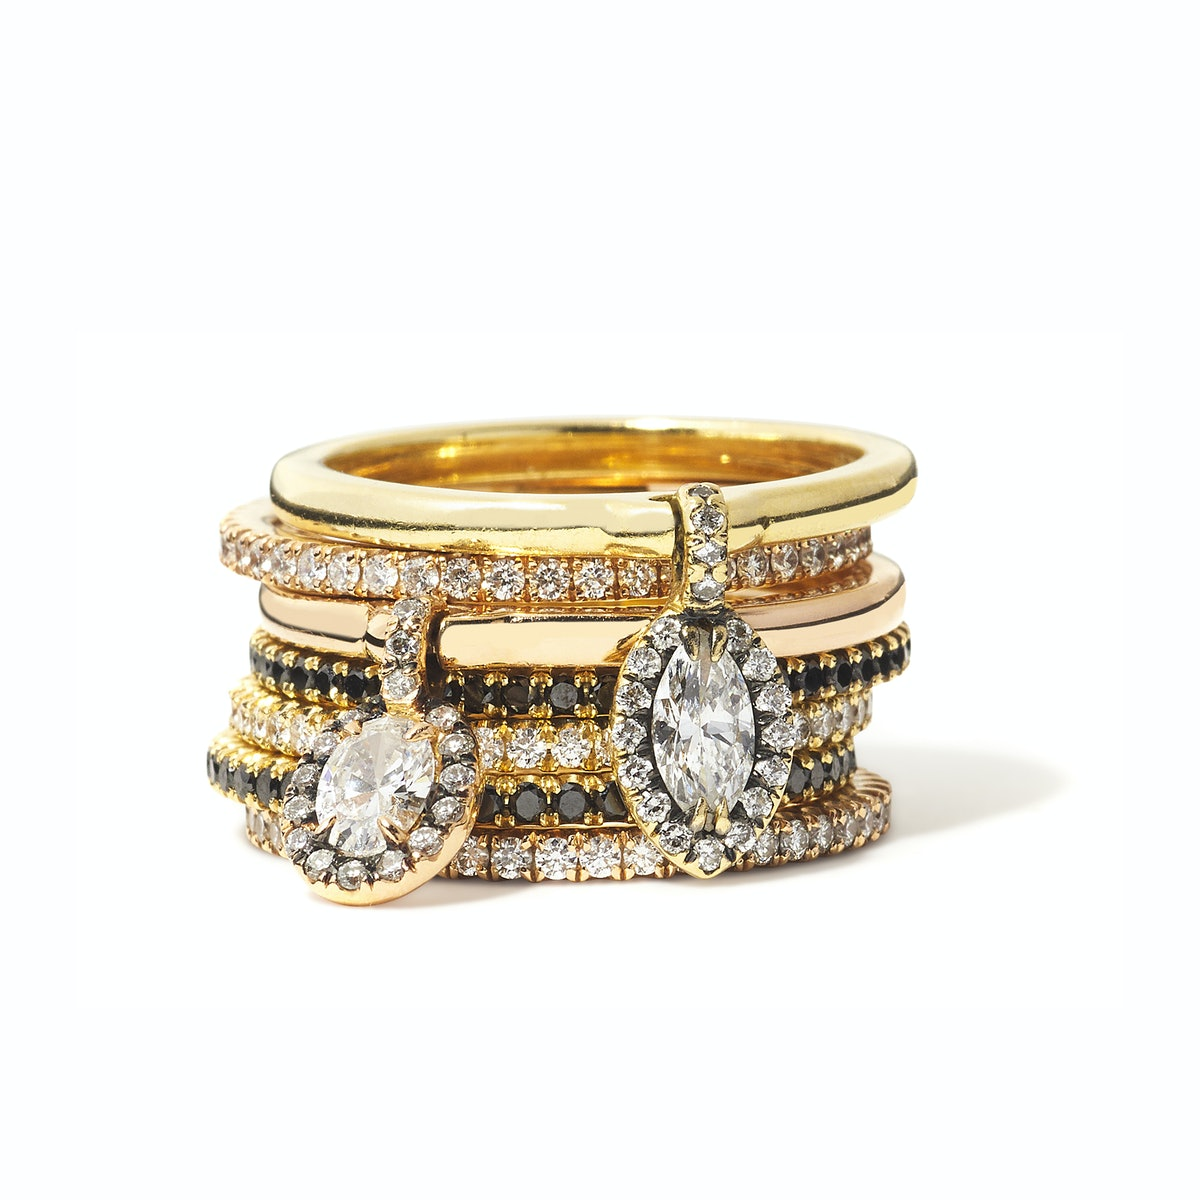 Forevermark by Jade Trau gold and diamond rings